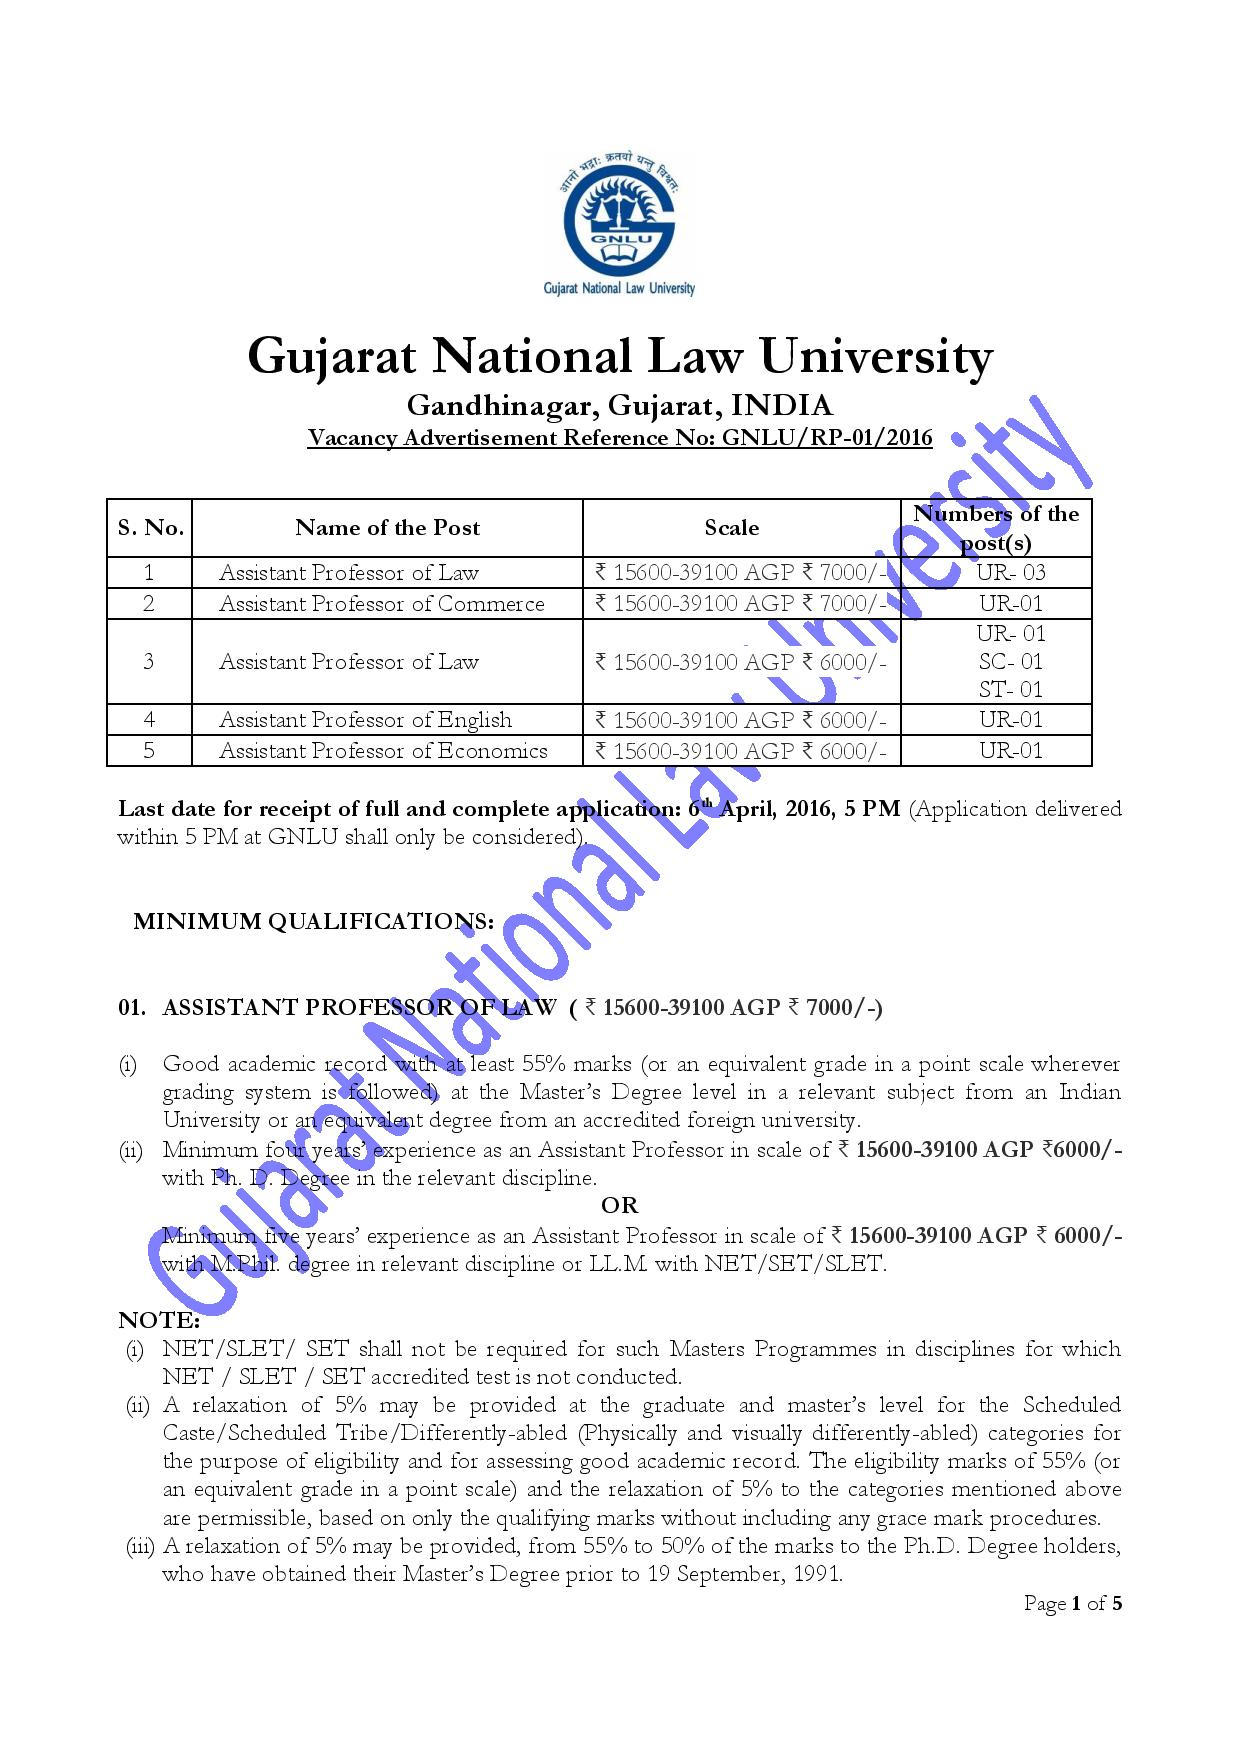 JOB POST: Assistant Professor @ Gujarat National Law University [GNLU]